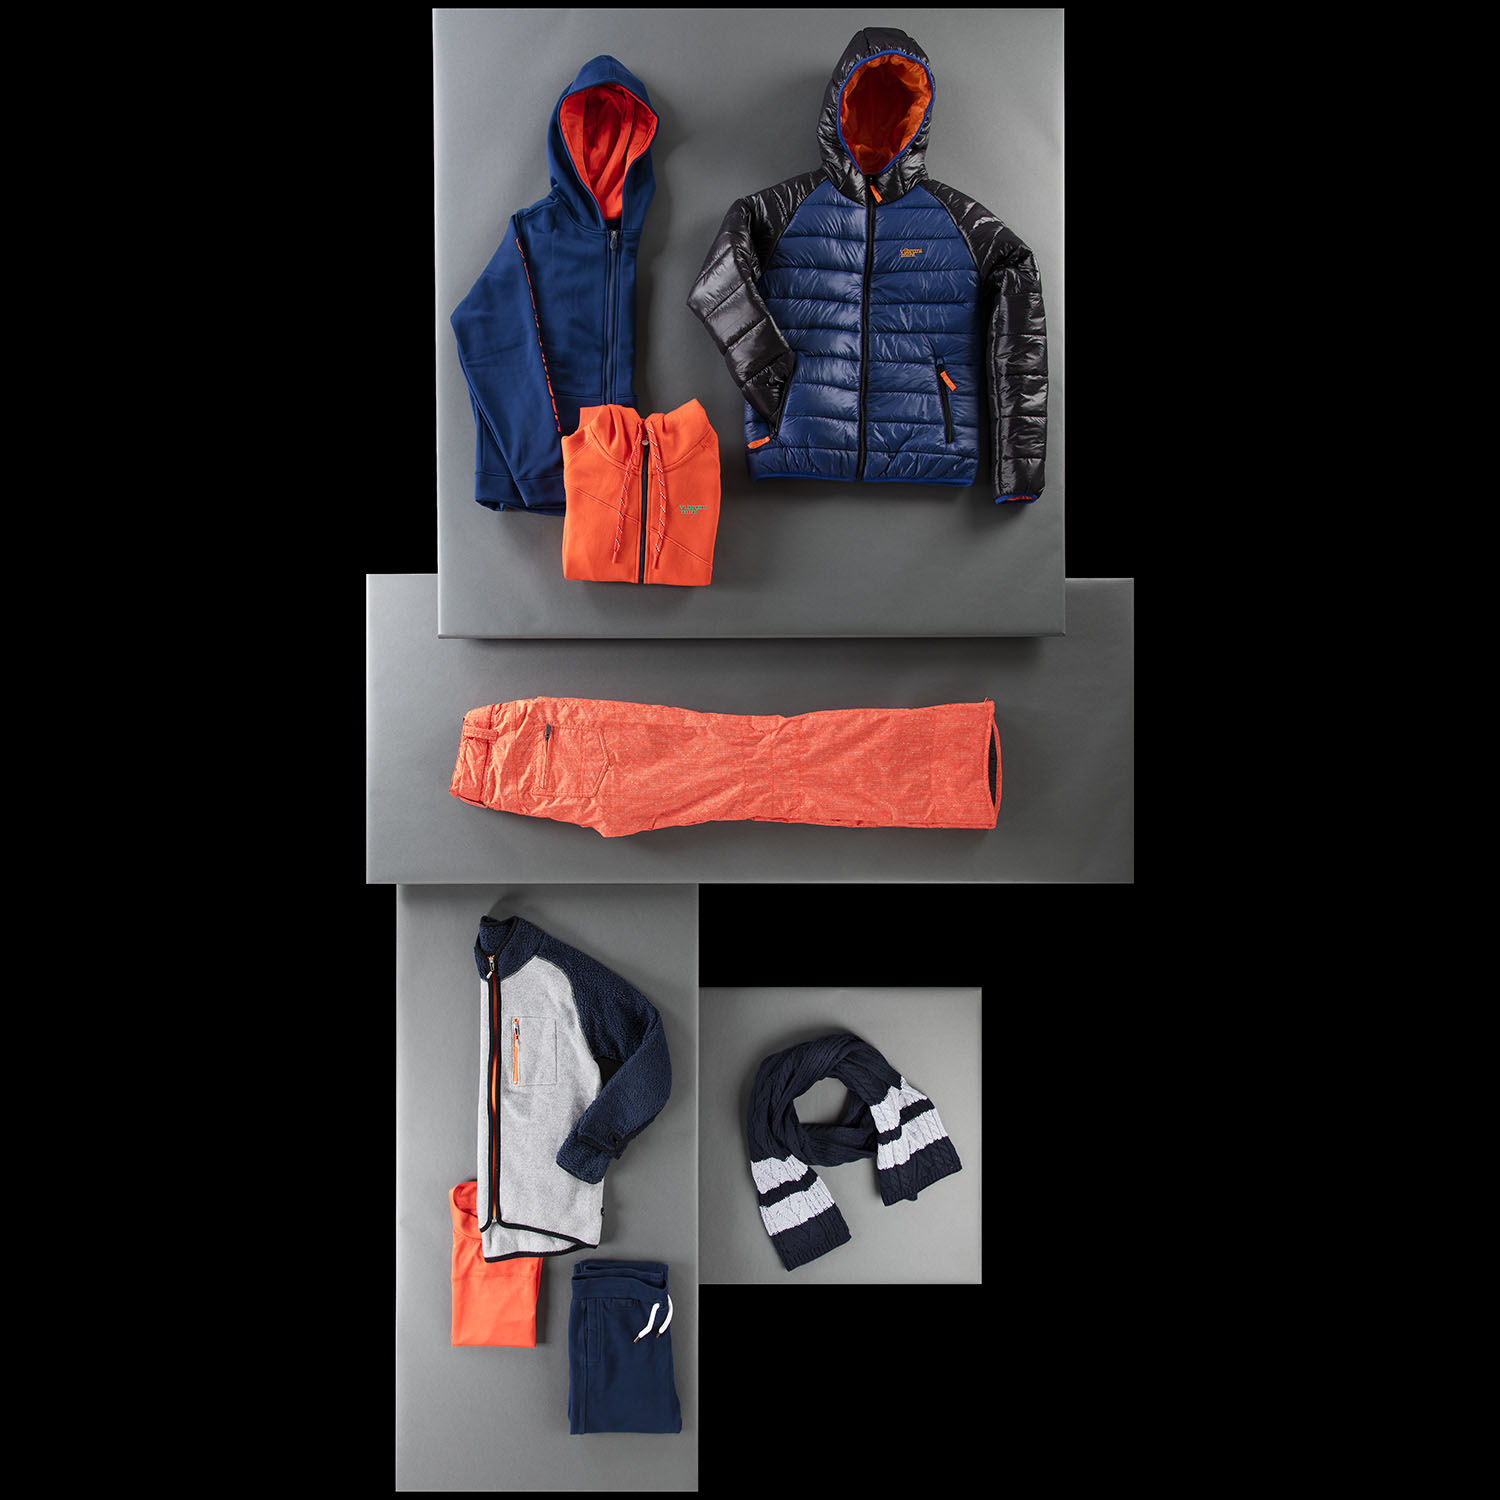 Ski fashion product collection